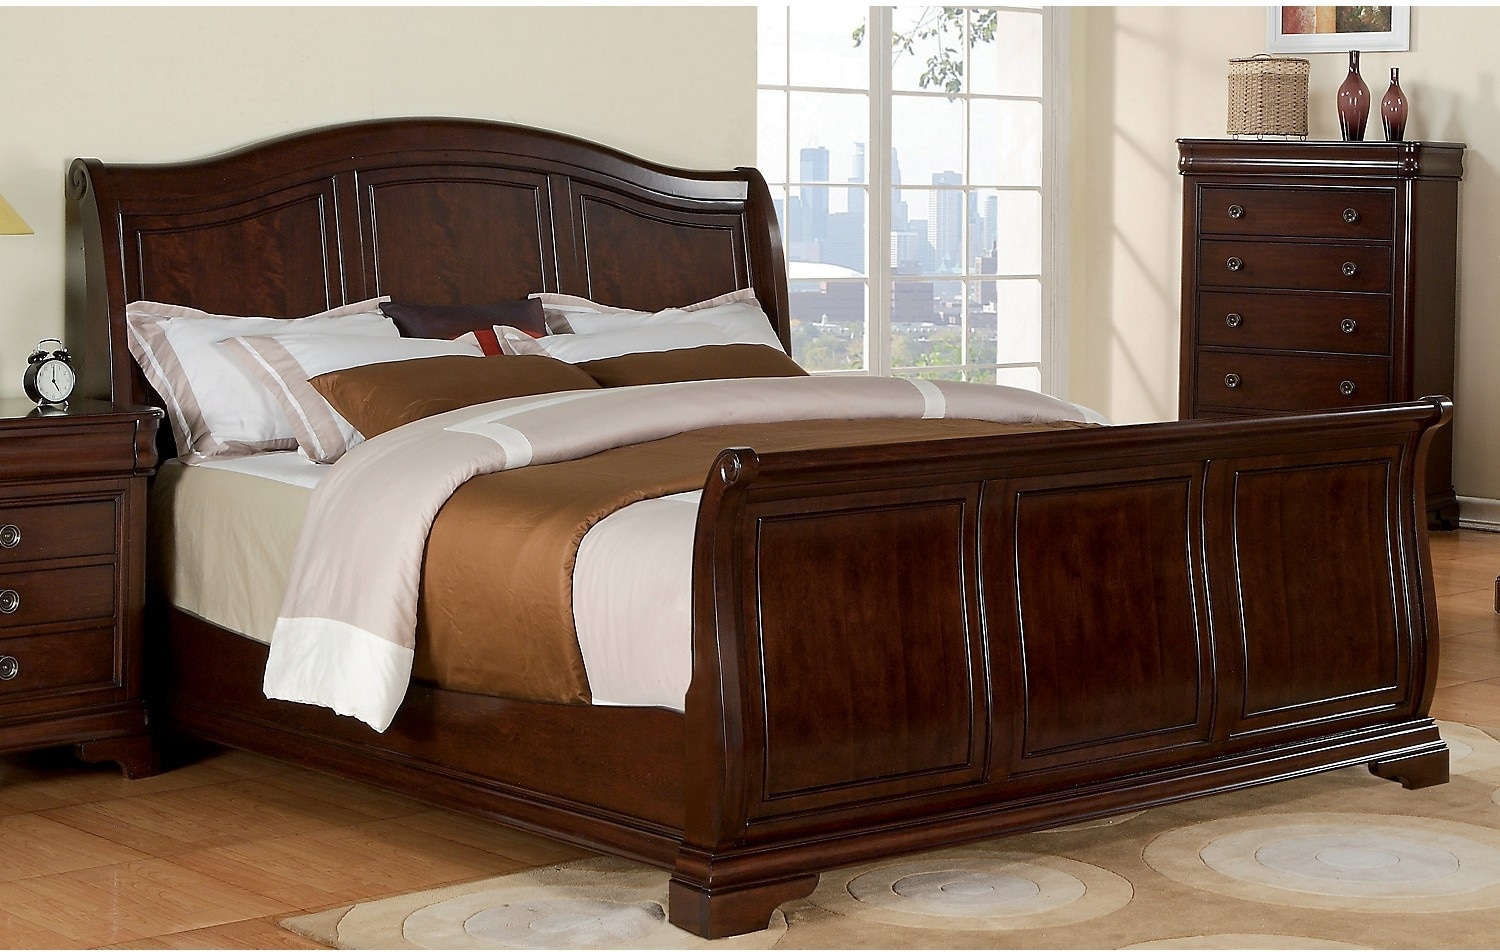 Cameron king sleigh bed united furniture warehouse for King sleigh bed bedroom sets